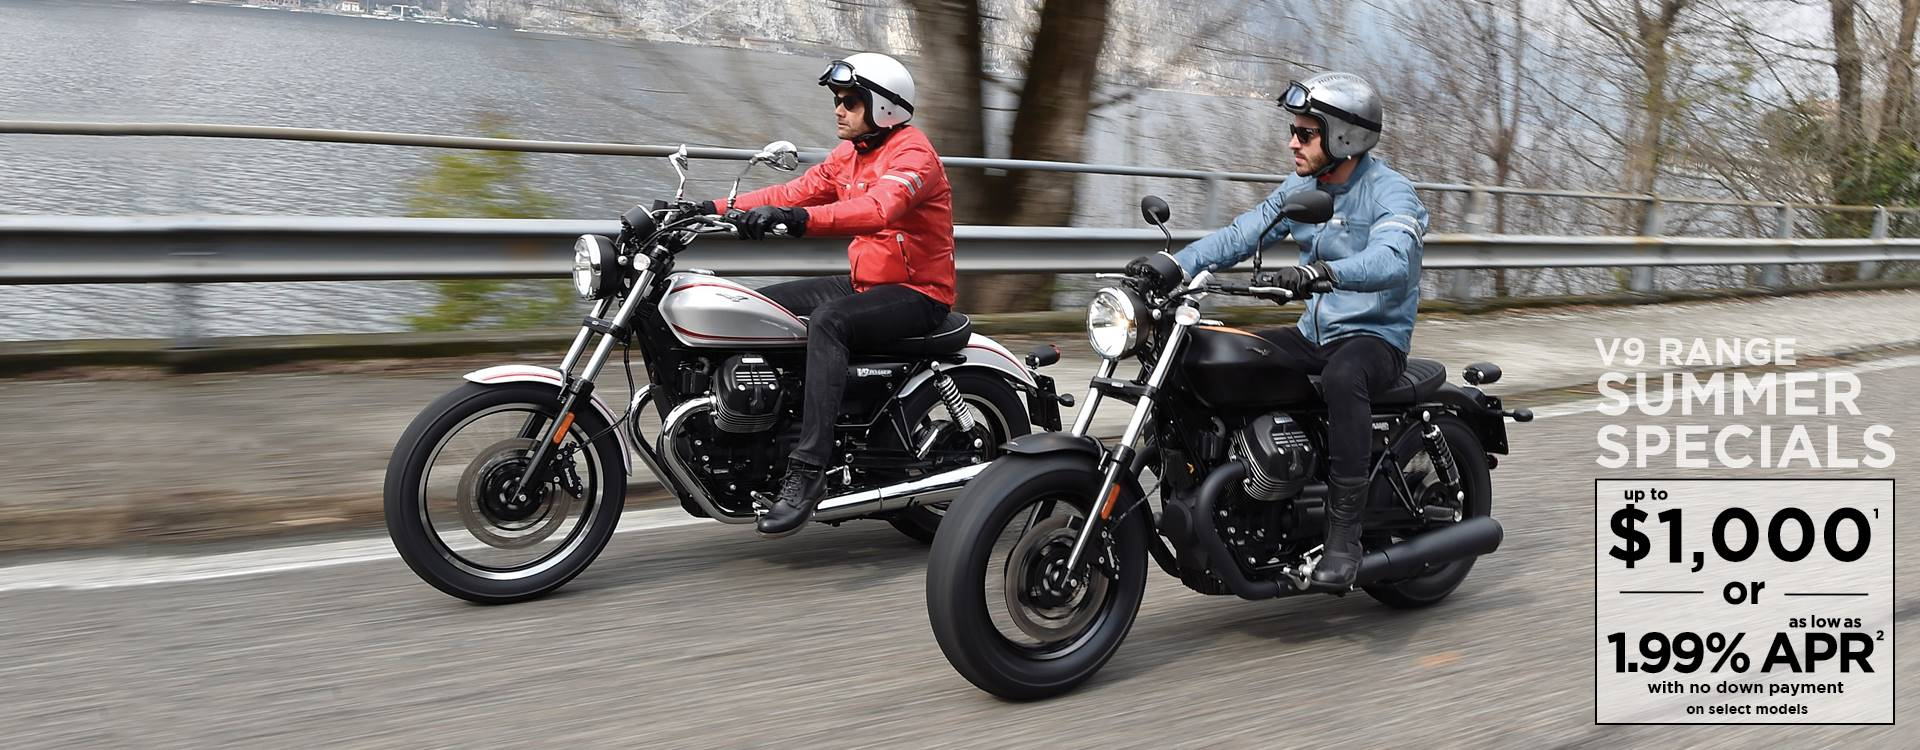 Moto Guzzi - Summer is here! Unprecedented offers on 2017 V9 Models!